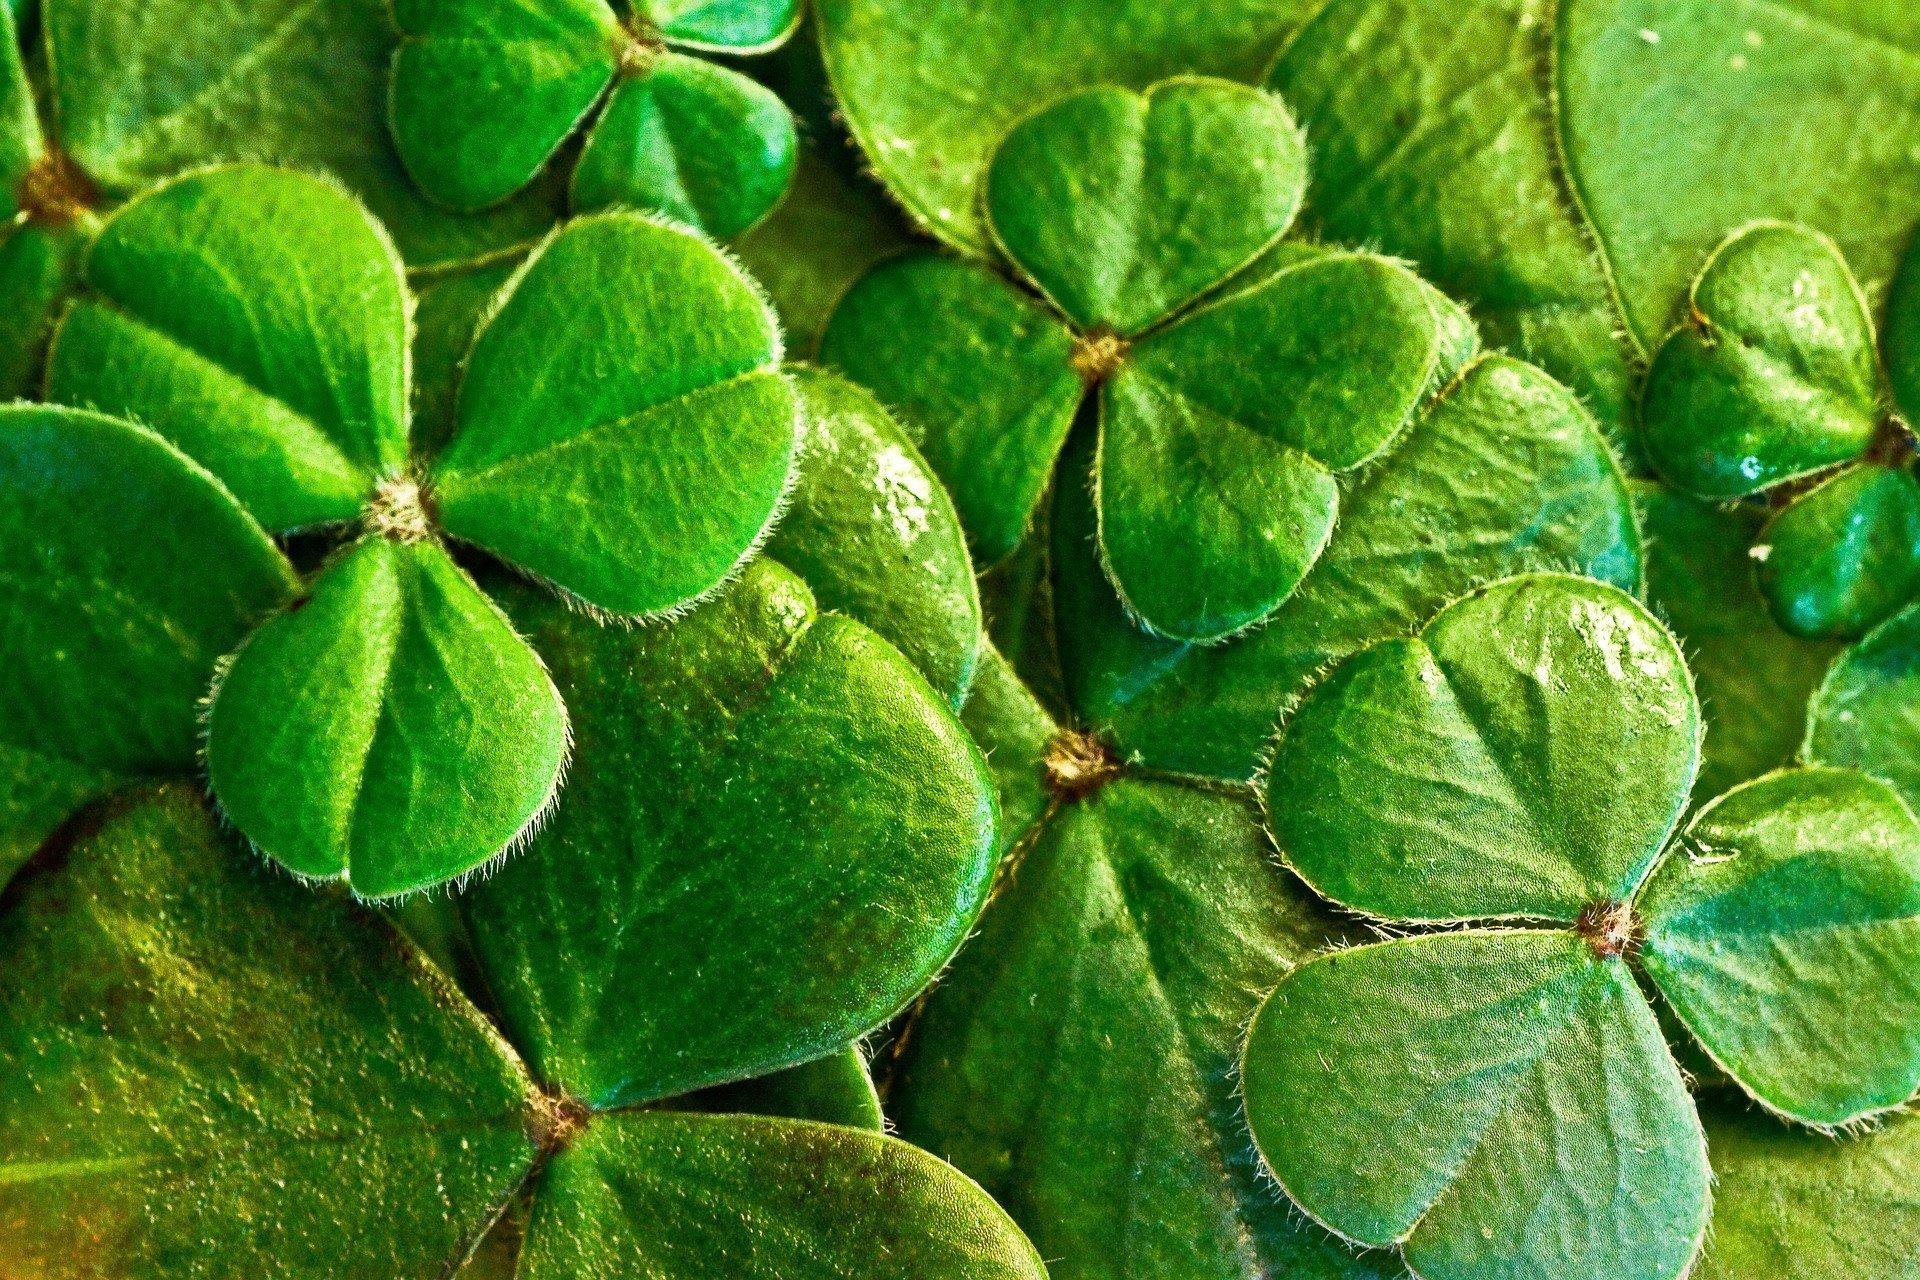 St. Patrick's stature grew in Ireland over the centuries, and around the 9th or 10th century Irish Christians began observing a feast day in his honor on March 17, the day he departed this wicked world. (Source: Pixabay)